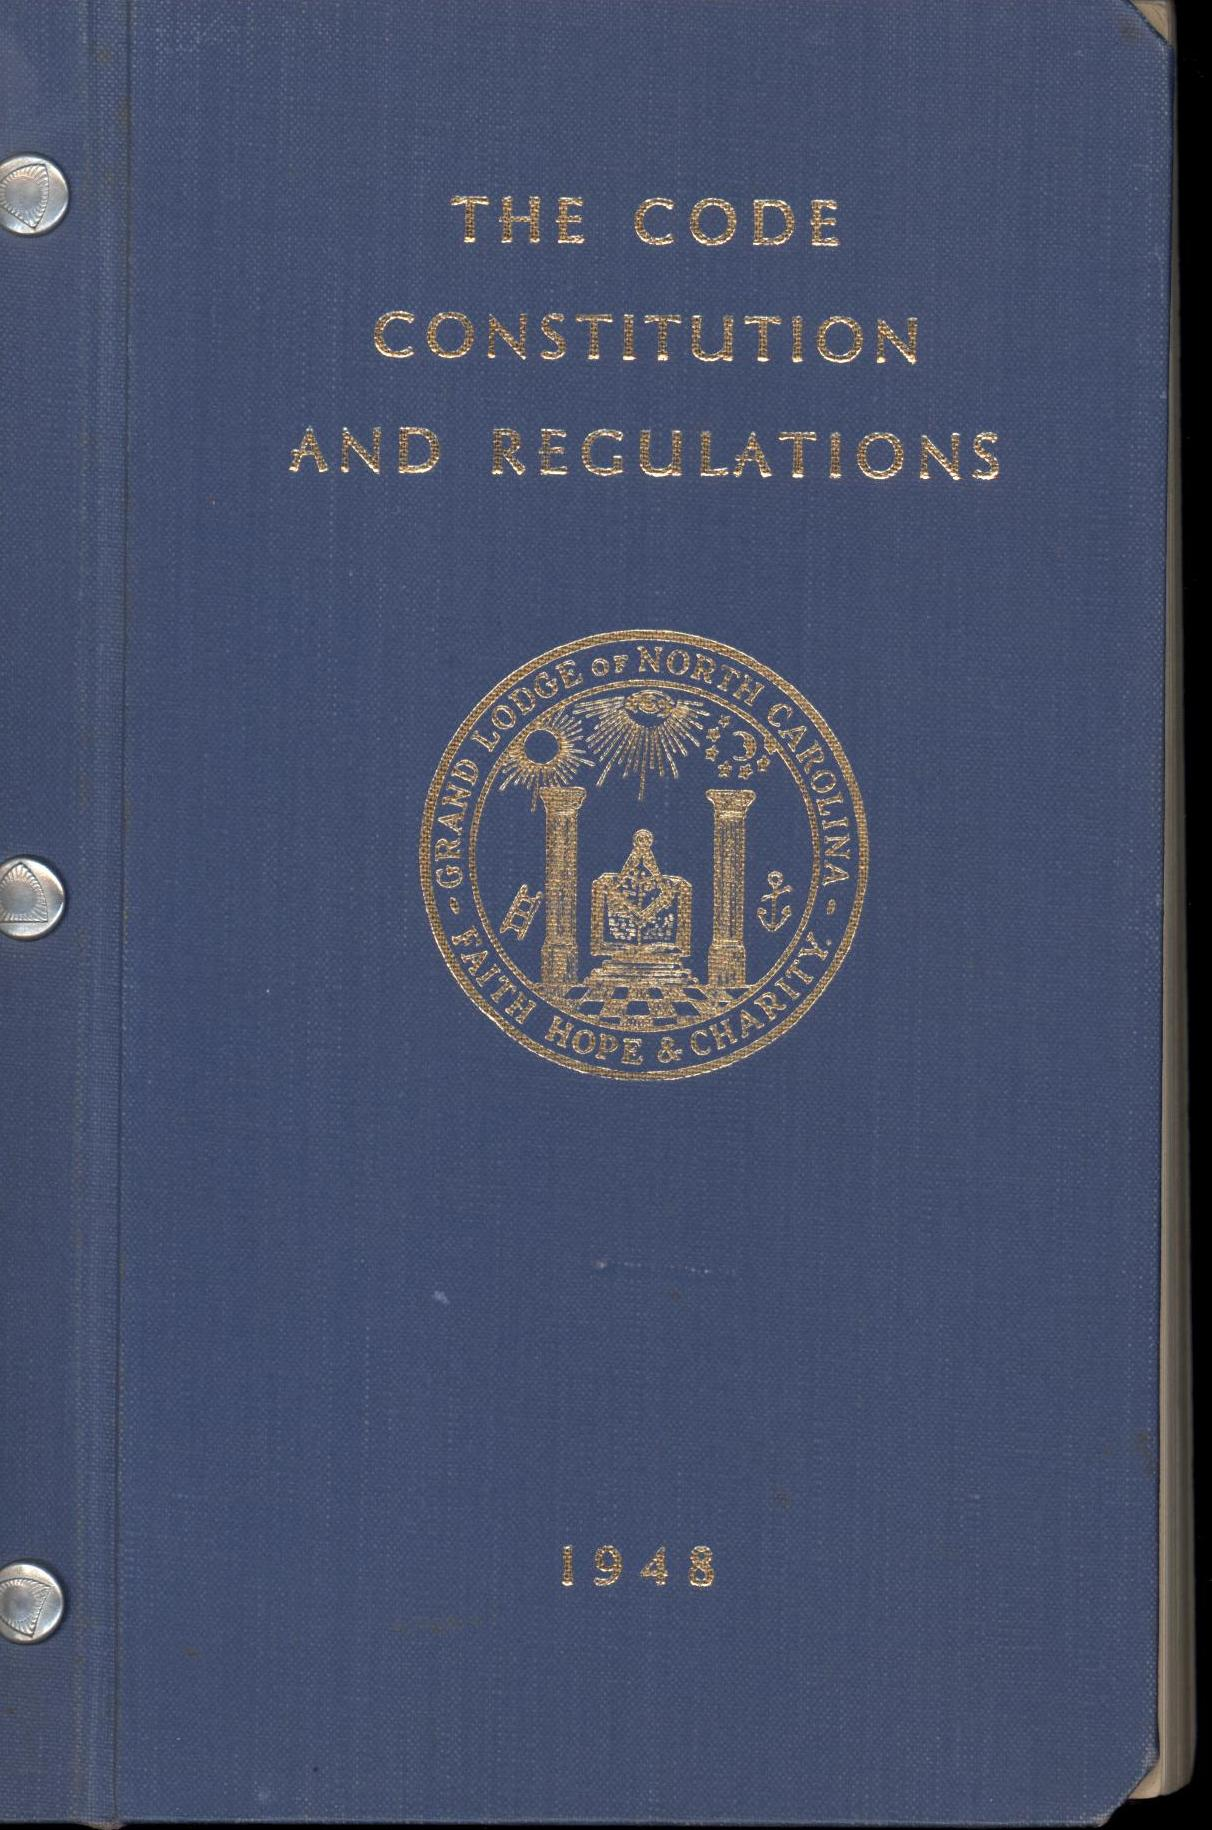 Image for The Code Constitution and Regulations 1948 (First Edition)